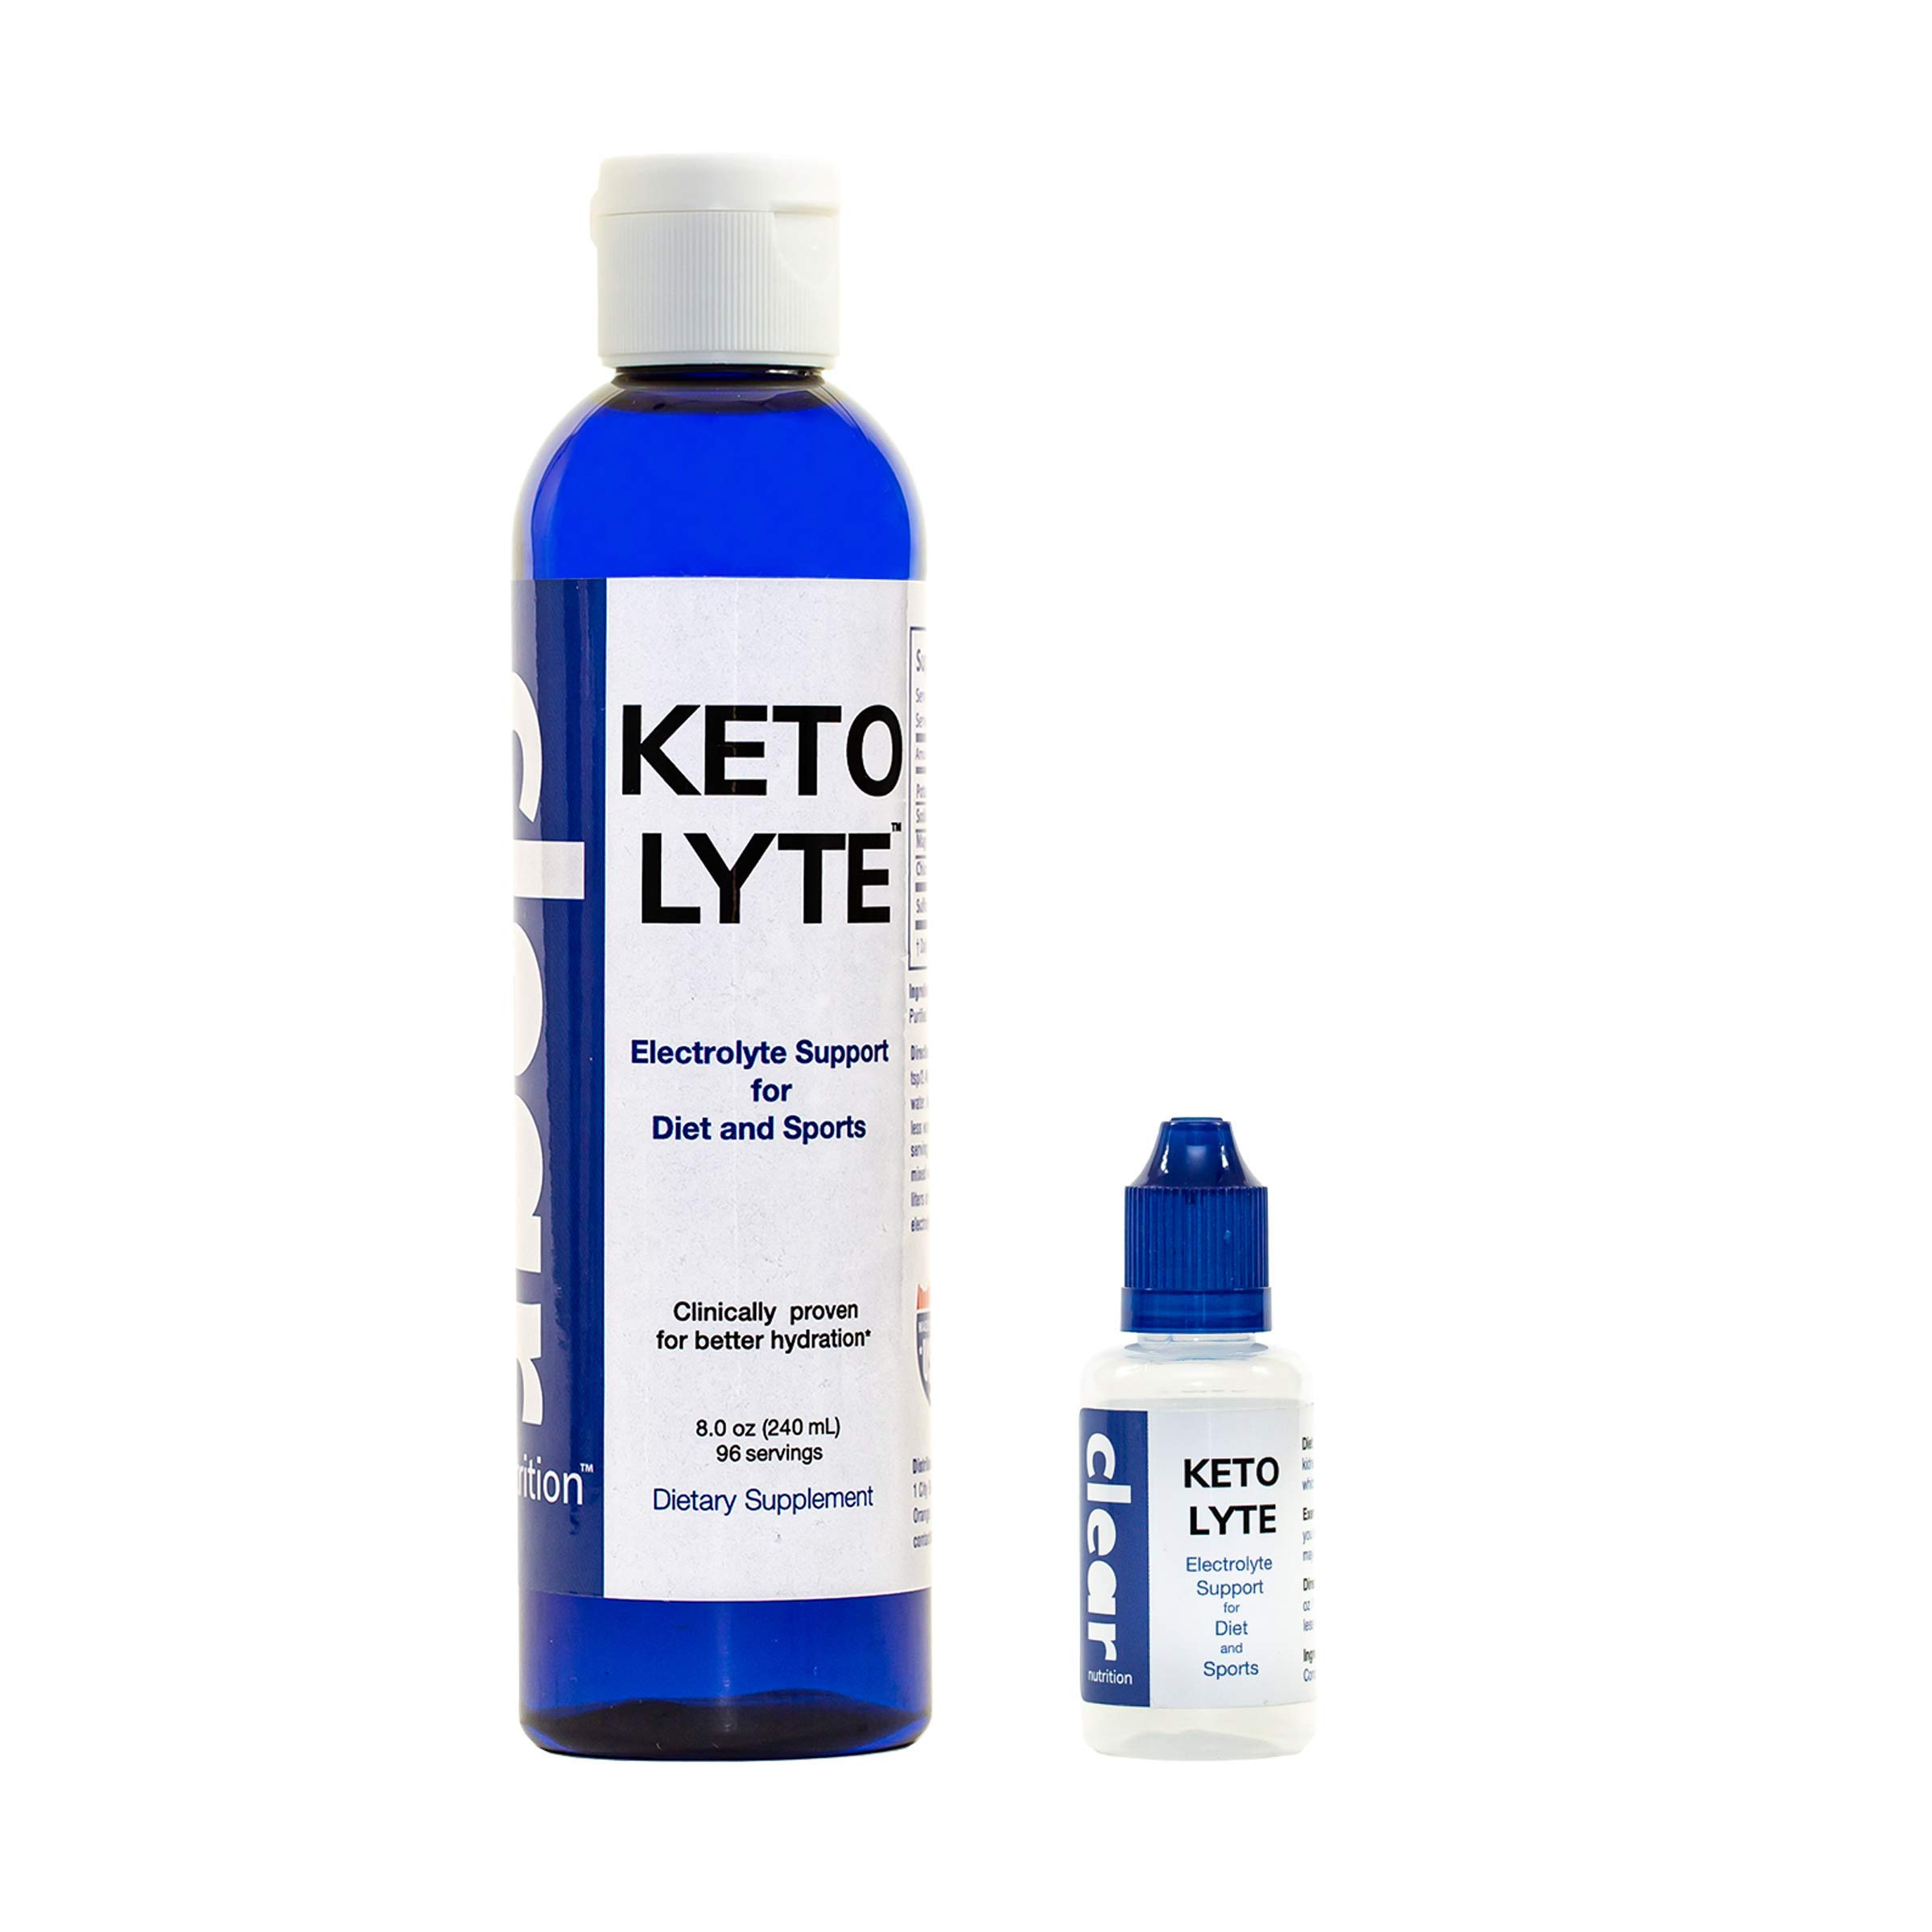 Keto Lyte Electrolyte Drops for Keto Flu, Leg Cramps | Rapid Hydration | NO Sugar - NO CARB - NO ADDITIVES | Made in USA | (8.0 oz - 96 Servings) by Clear Nutrition